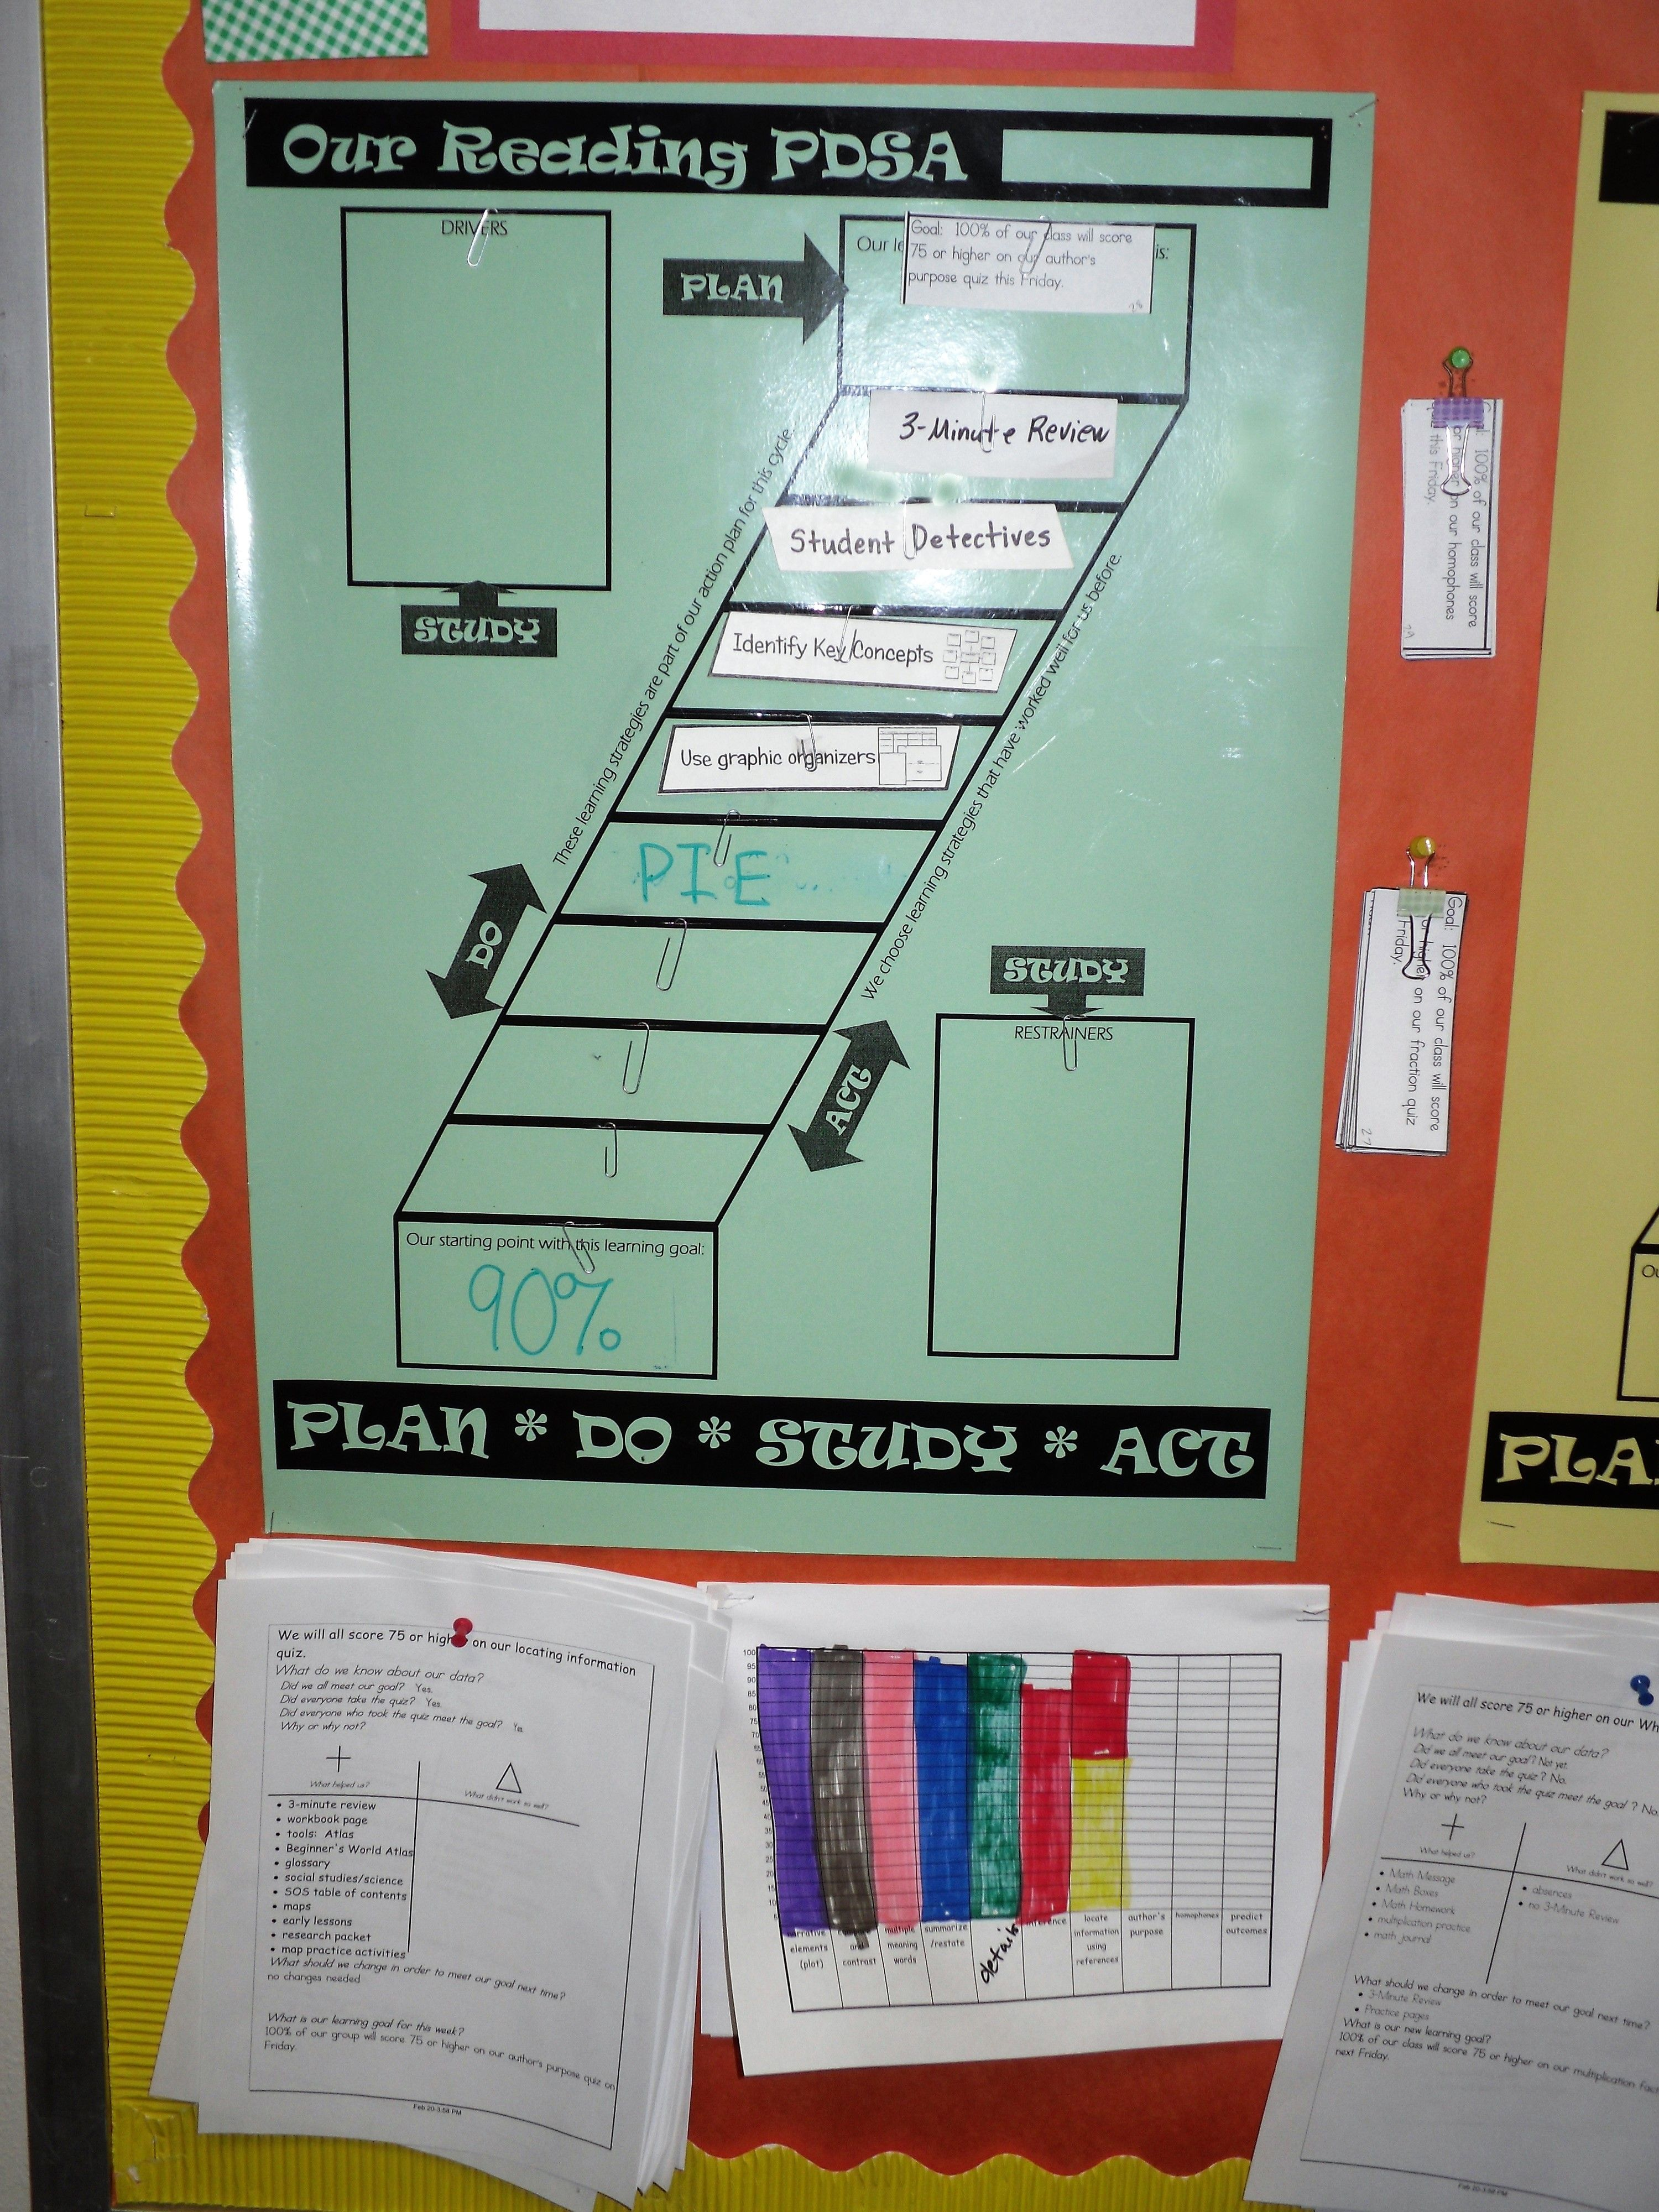 medium resolution of the ladder diagram is used to support a weekly pdsa cycle for a reading learning goal the teacher adds the strategies to the steps on the ladder to show